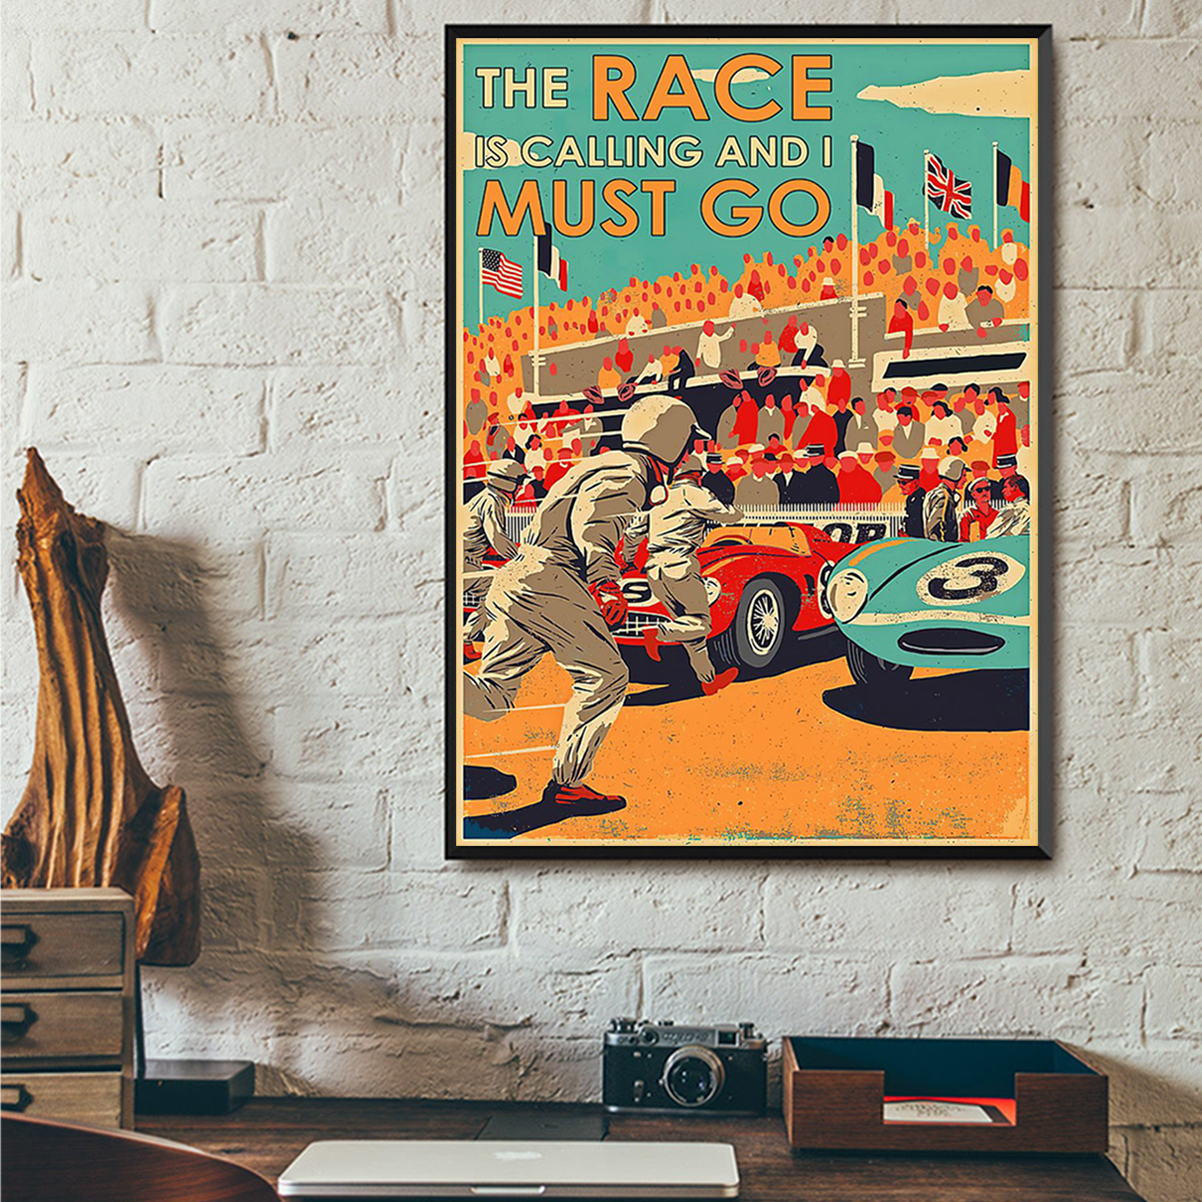 The race is calling and I must go poster A3